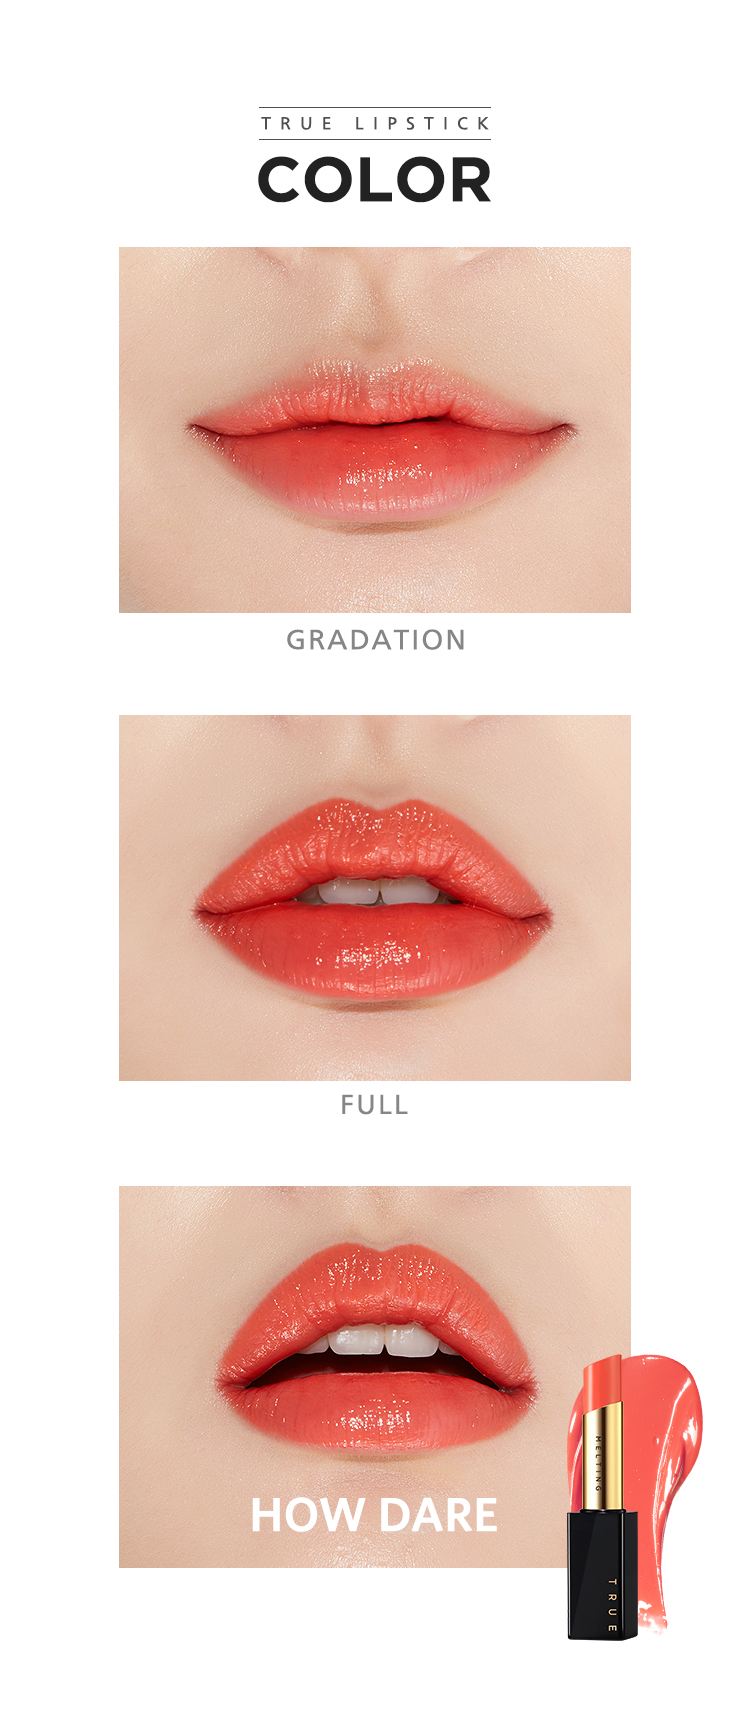 APIEU_True_Melting_Lipstick_bf_CR03_02.jpg